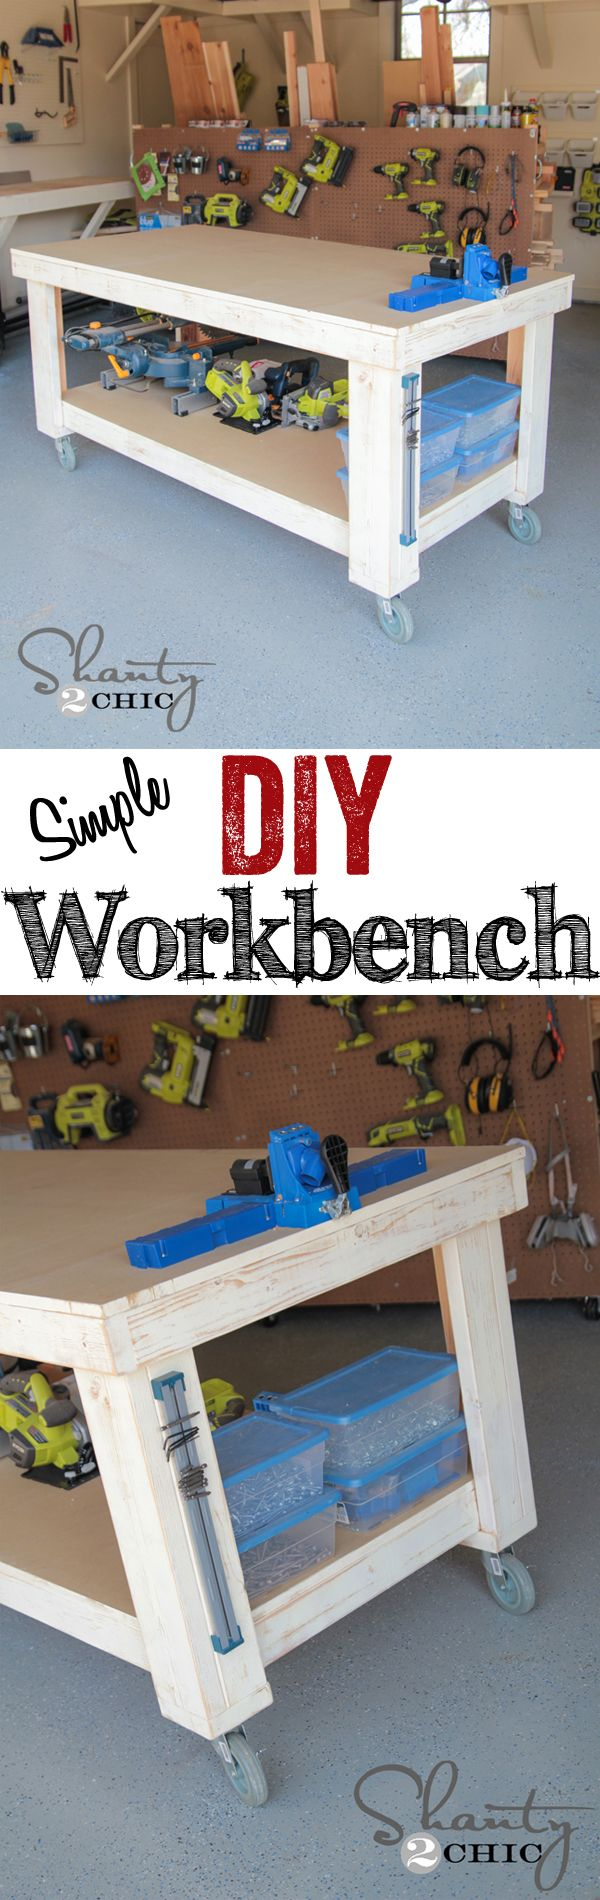 Awesome and simple DIY Workbench!! LOVE this! www.shanty-2-chic.com